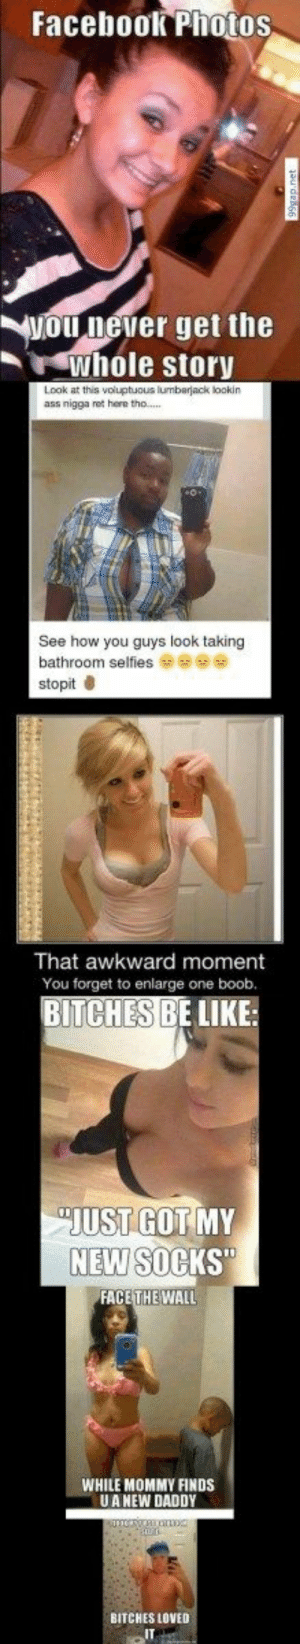 #Funniest #Memes About #Bathroom #Selfies: Facebook Photos  ou  T never get the  whole story  Look at this voluptuous lumbarjack lookin  ass nigga net here tho...  See how you guys look taking  bathroom selfiese  stopit  That awkward moment  You forget to enlarge one boob.  CHES BE LIKE  BIT  JUST GOTMY  NEW  FACETHEWALL  WHILE MOMMY FINDS  UA NEW DADDY  BITCHES LOVED  IT #Funniest #Memes About #Bathroom #Selfies